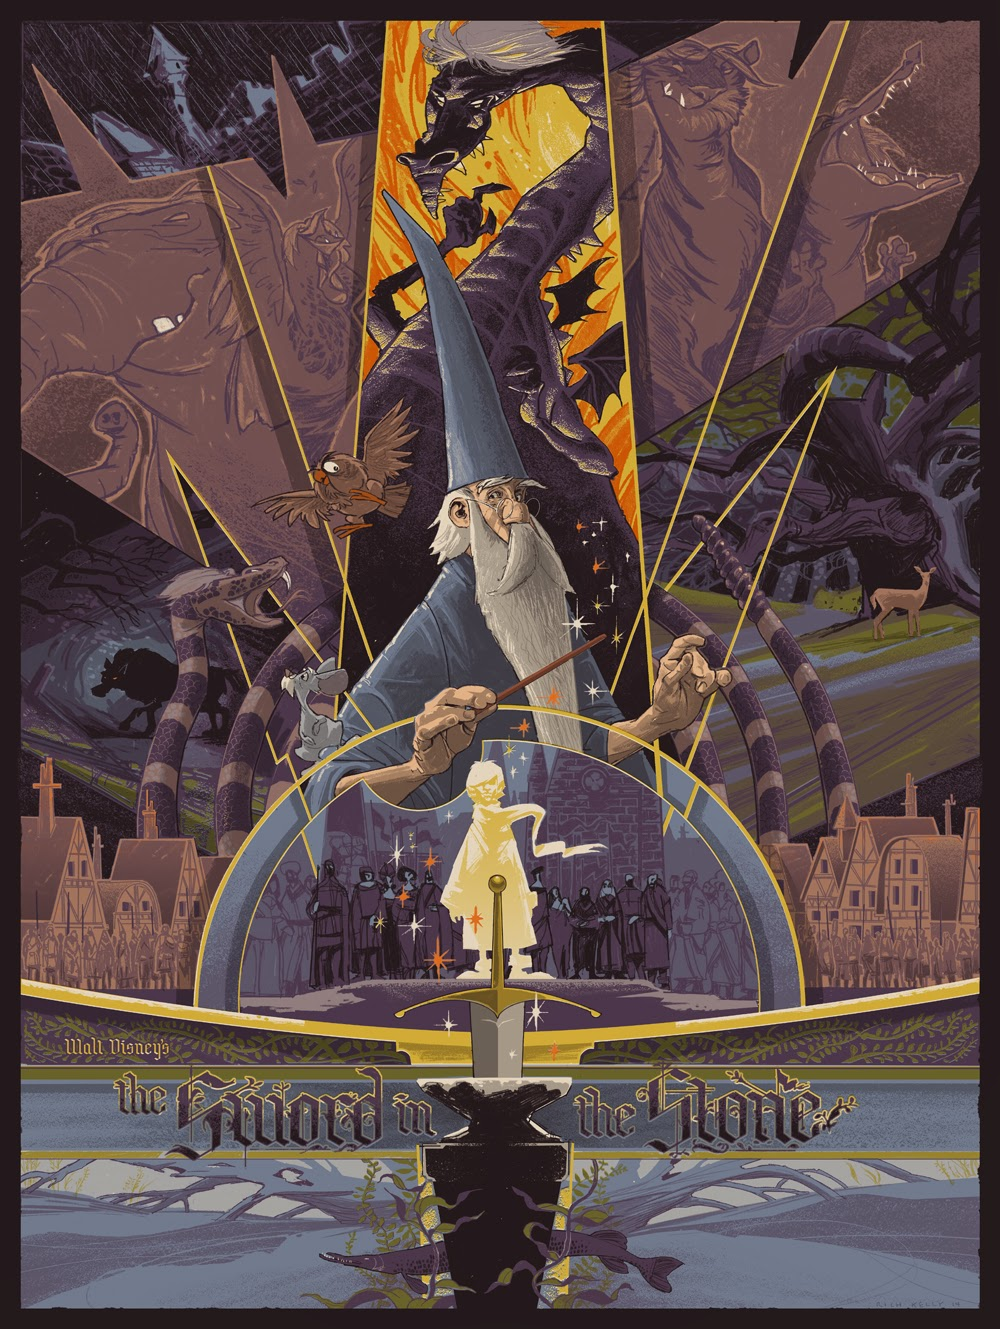 Rich-Kelly-The-Sword-in-the-Stone-Disney-Poster-Mondo